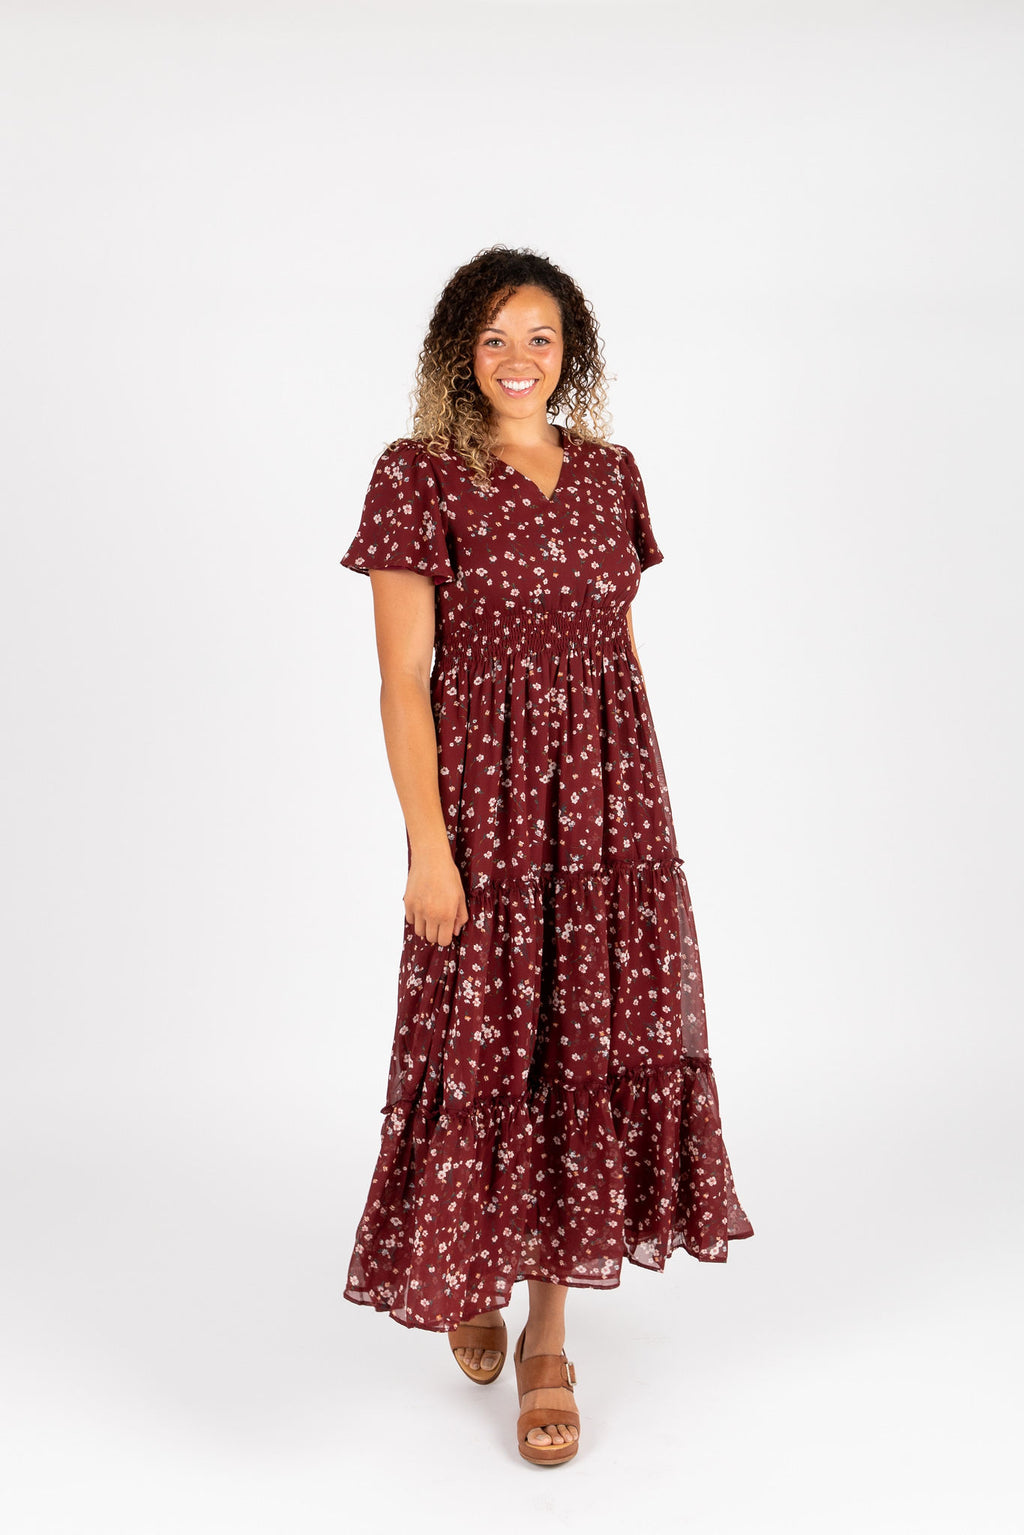 The Eden Floral Maxi Dress in Burgundy